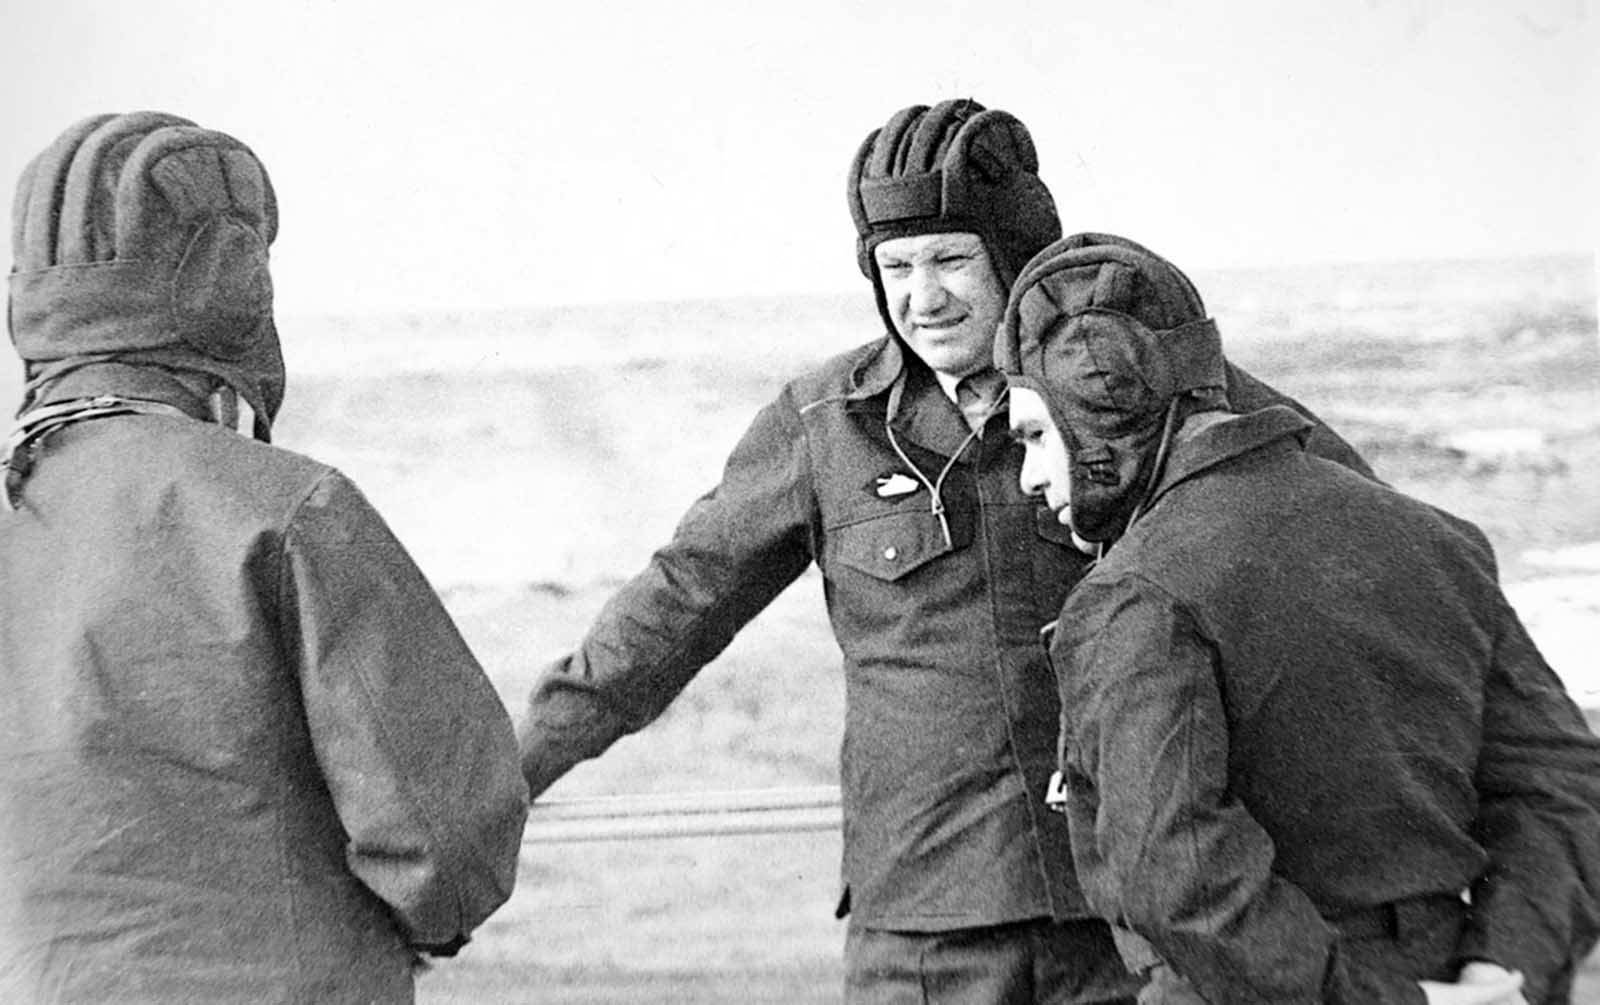 Yeltsin visiting the military drill of the Soviet army in Sverdlovsk region. 1980s.